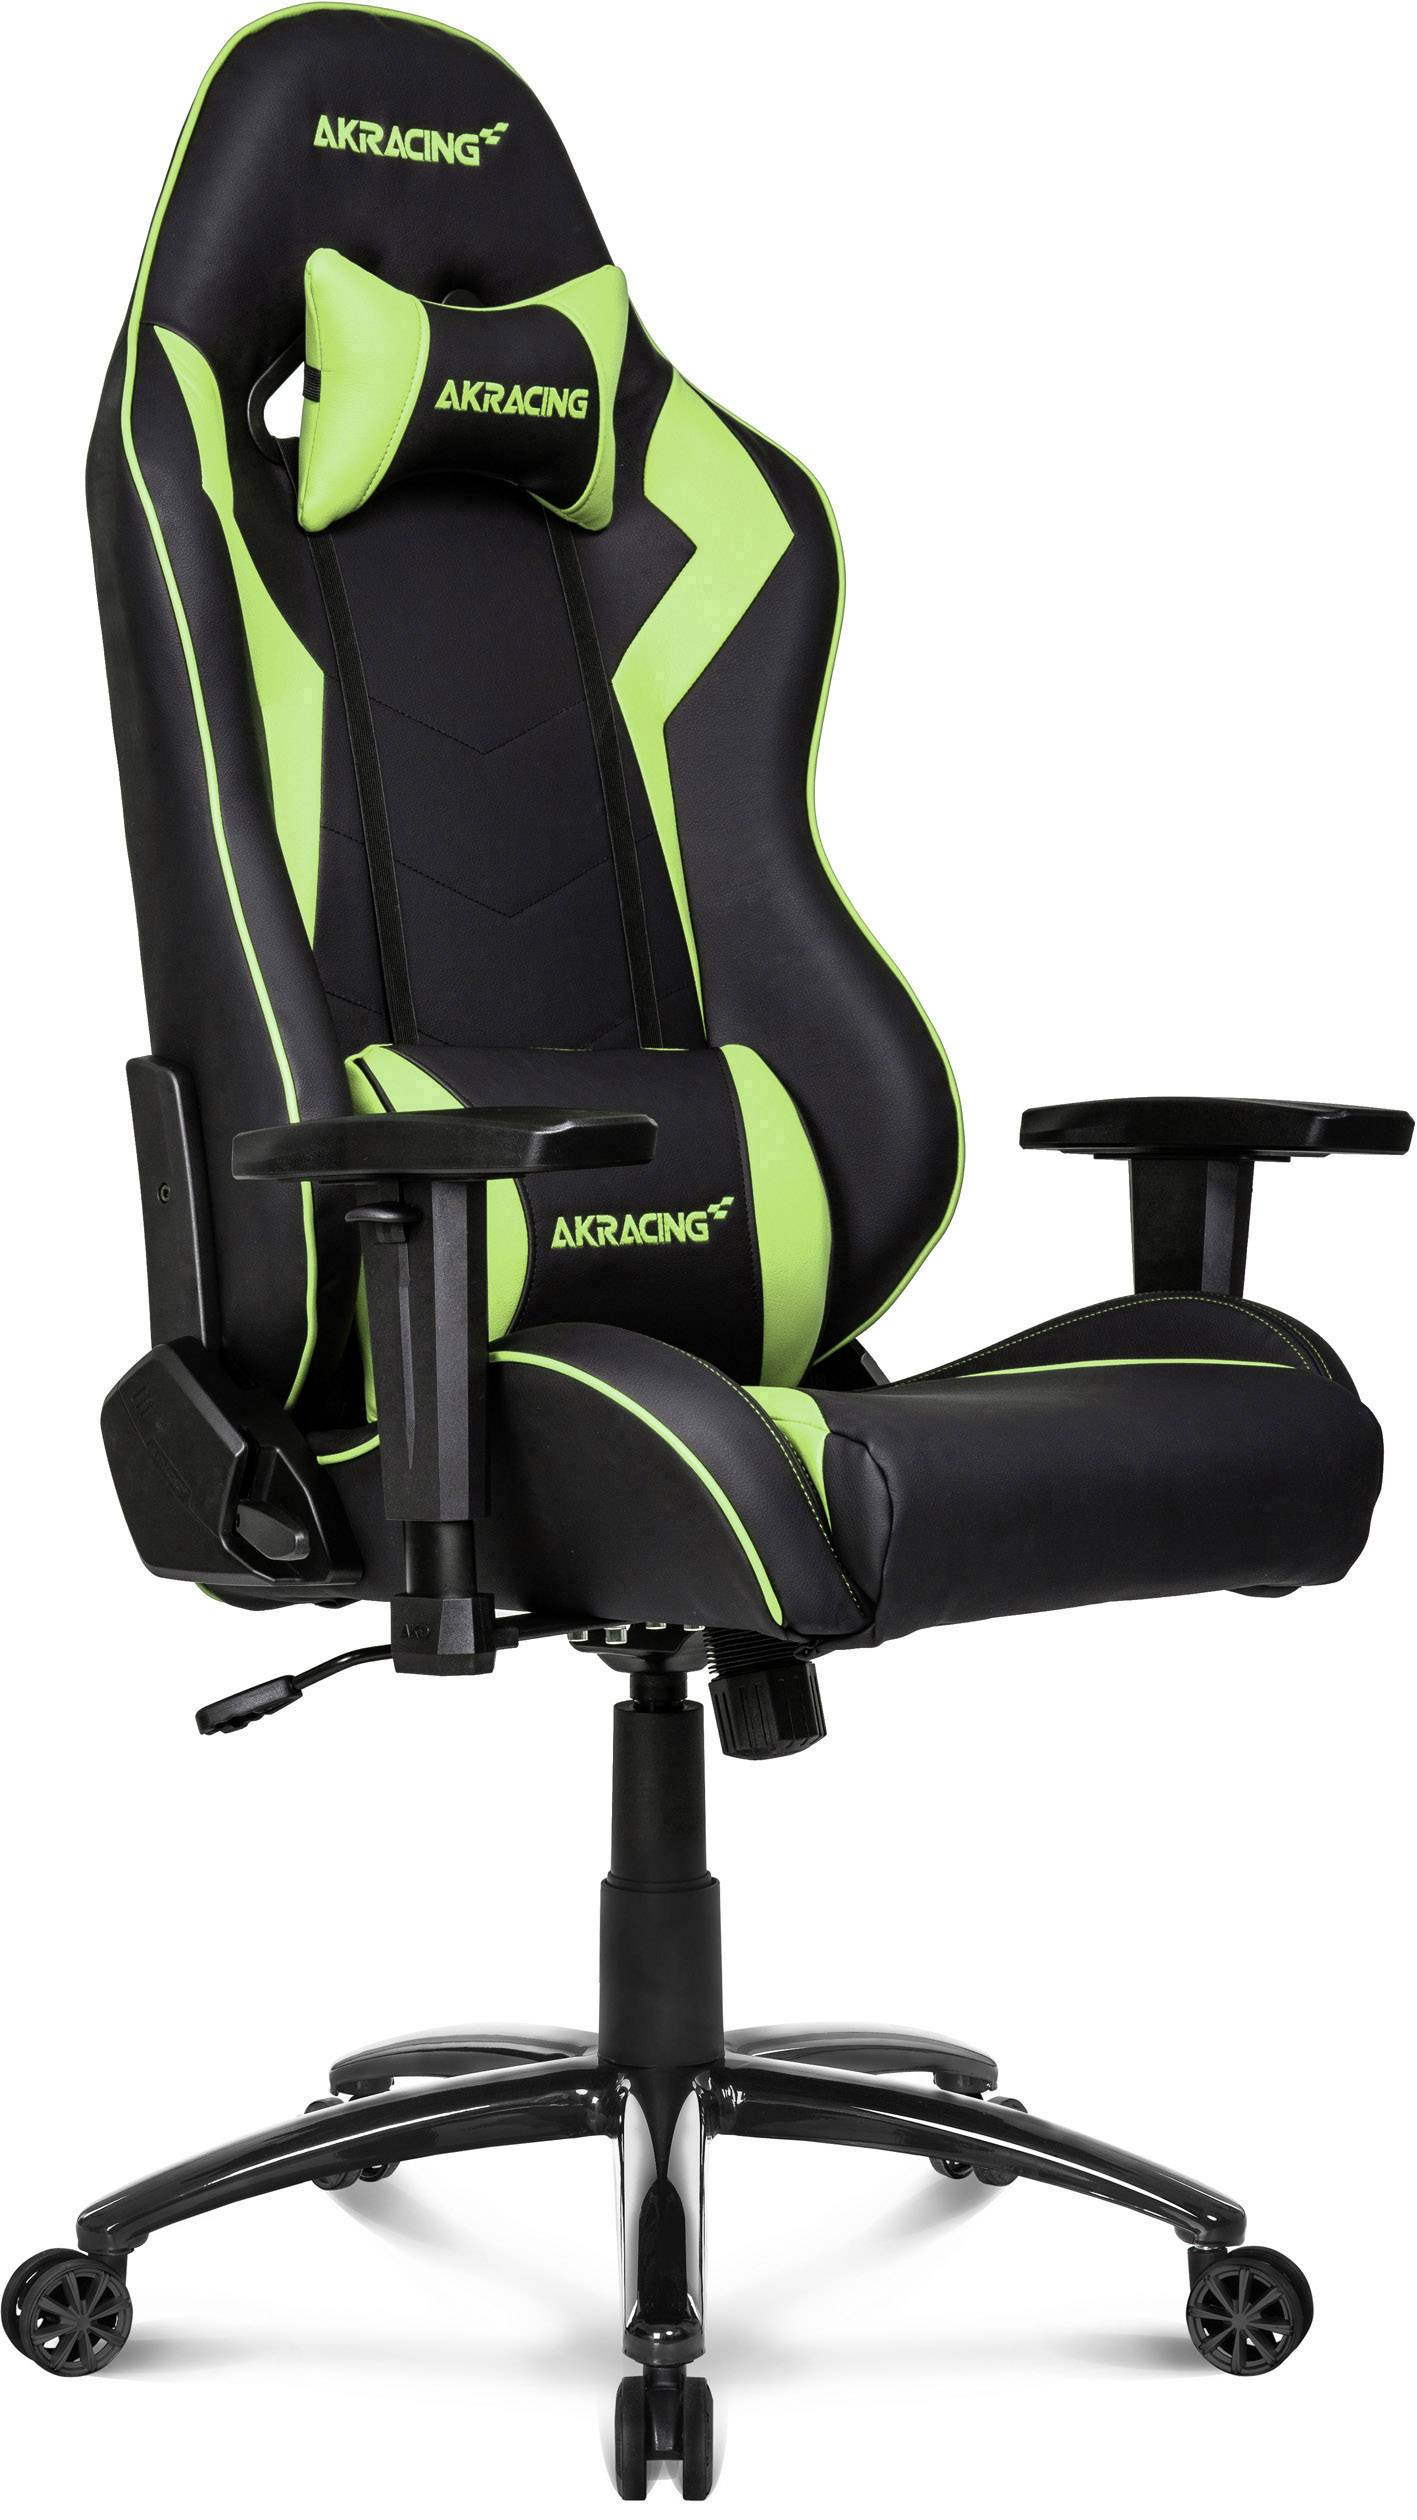 Fauteille Gamer Akracing Core Sx Gaming Stoel Groen